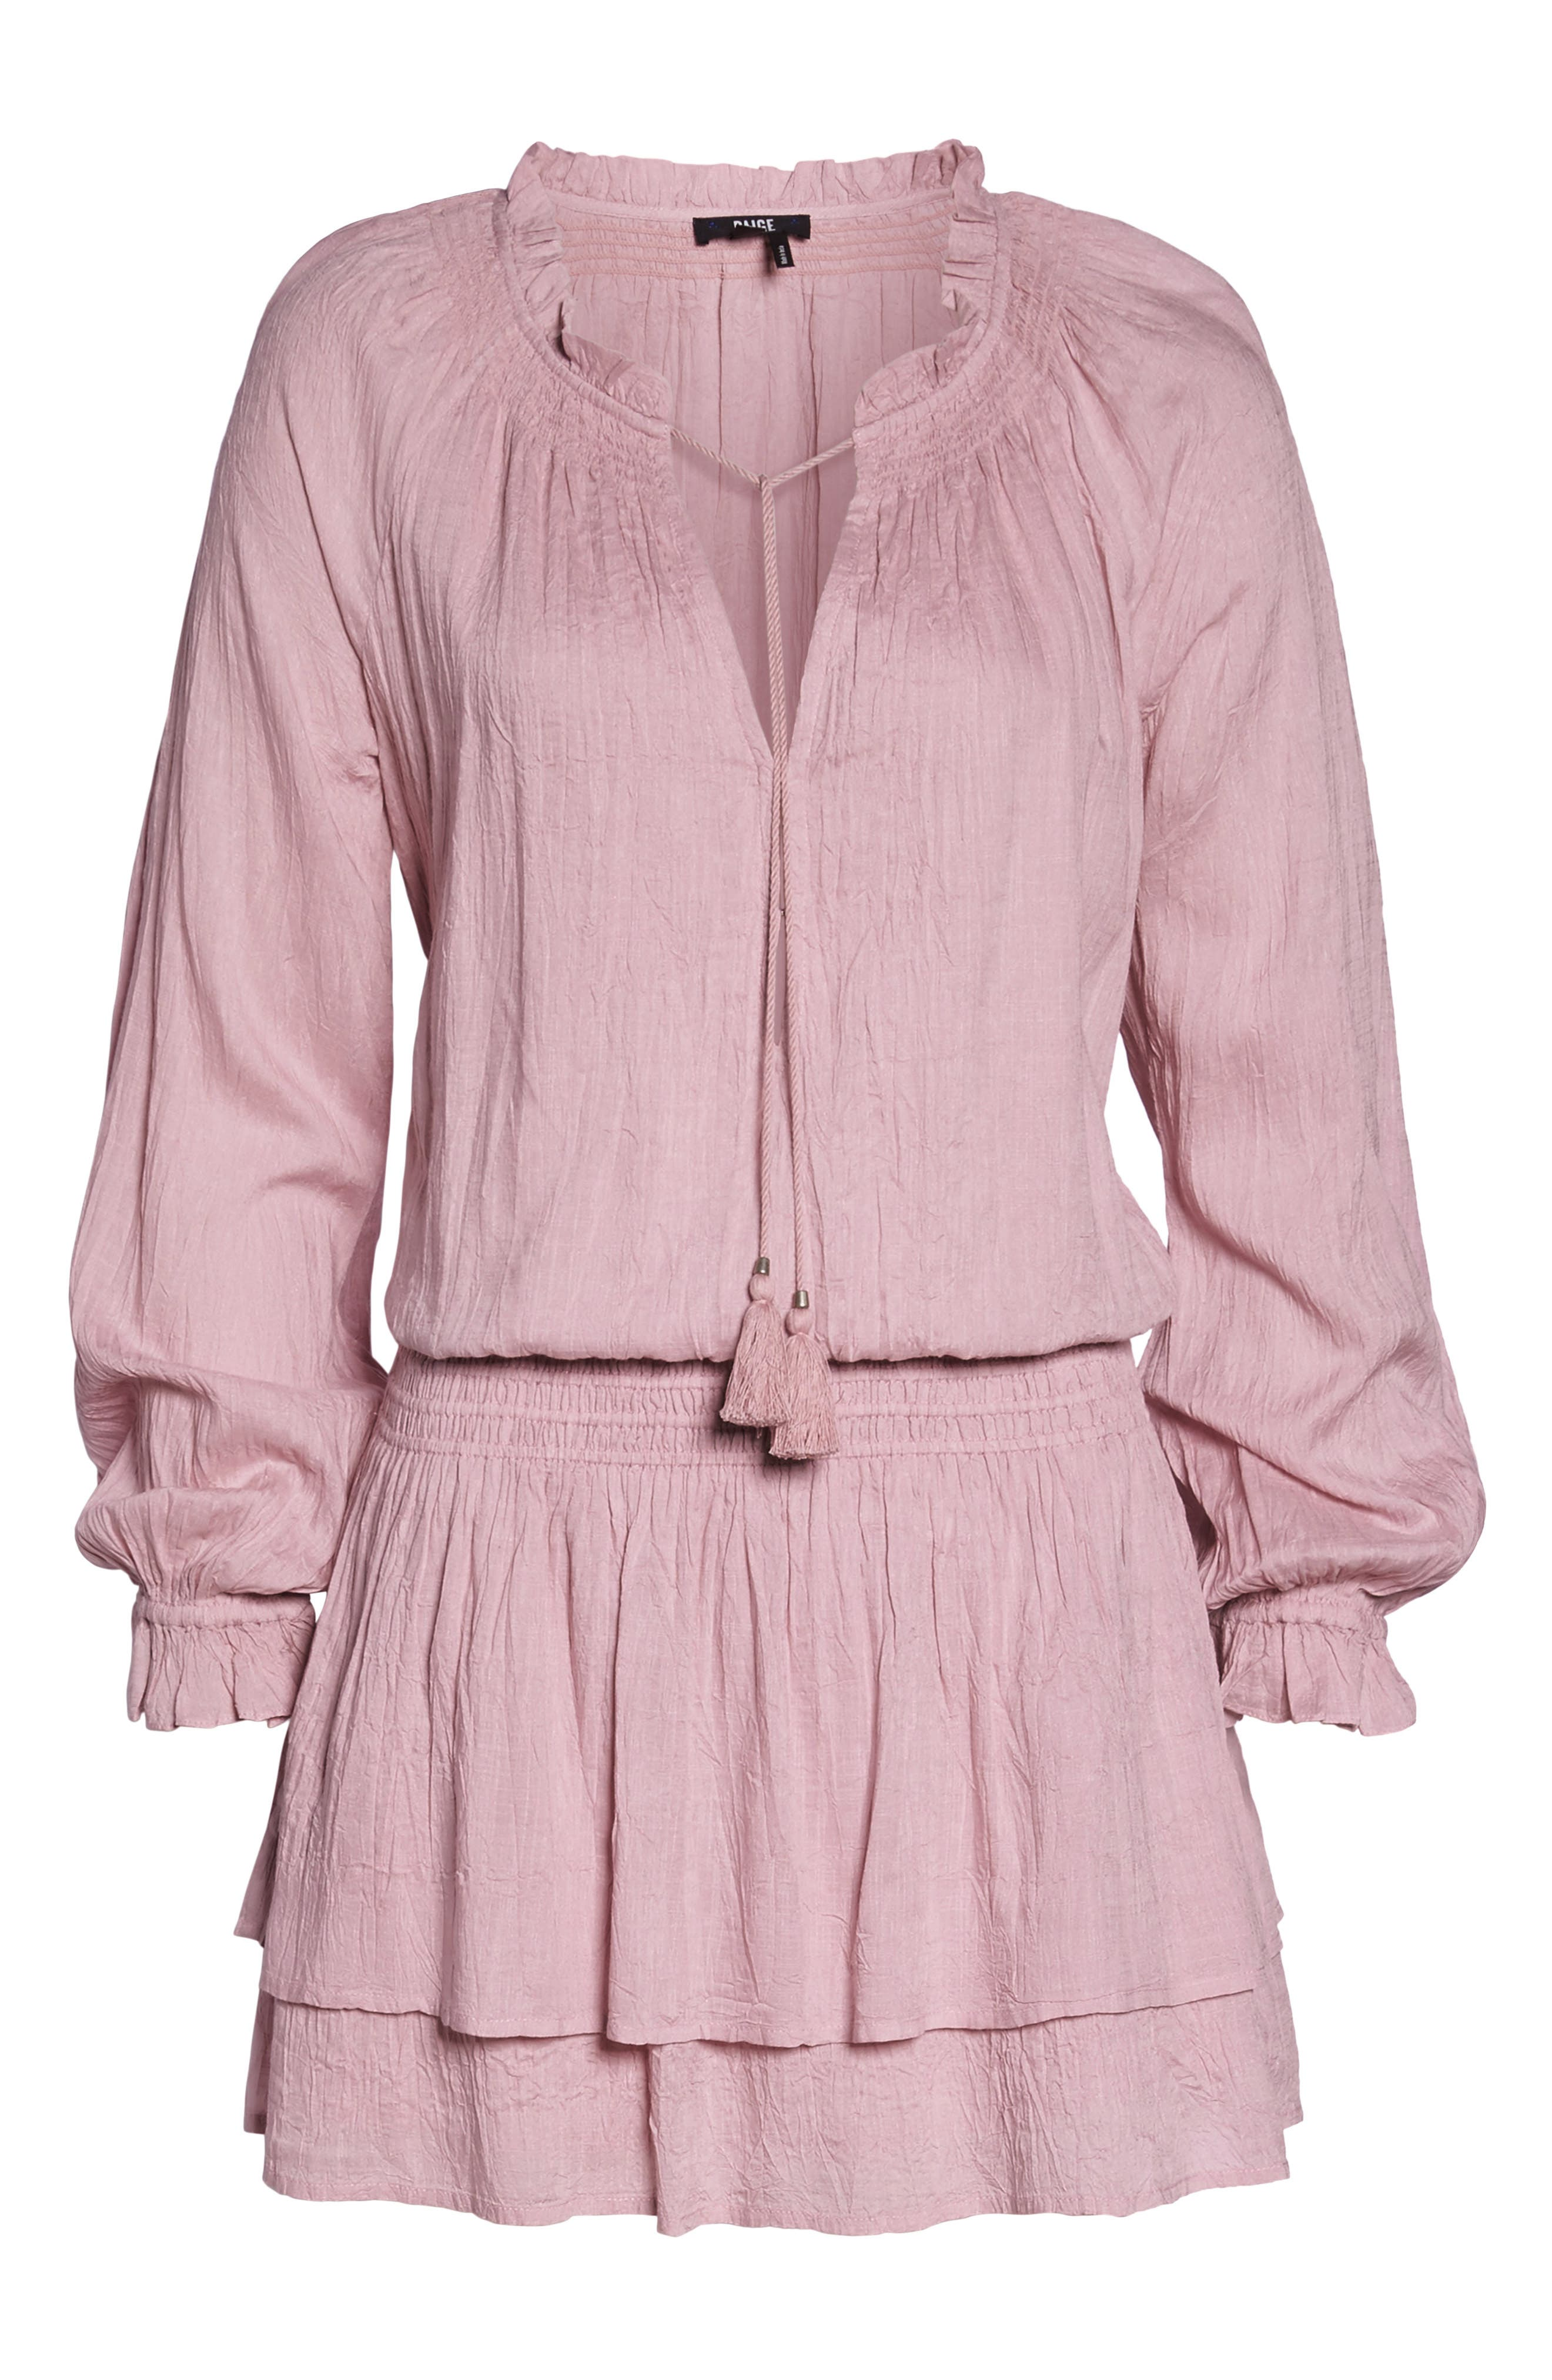 Lemay Peasant Dress,                             Alternate thumbnail 7, color,                             Pale Mauve